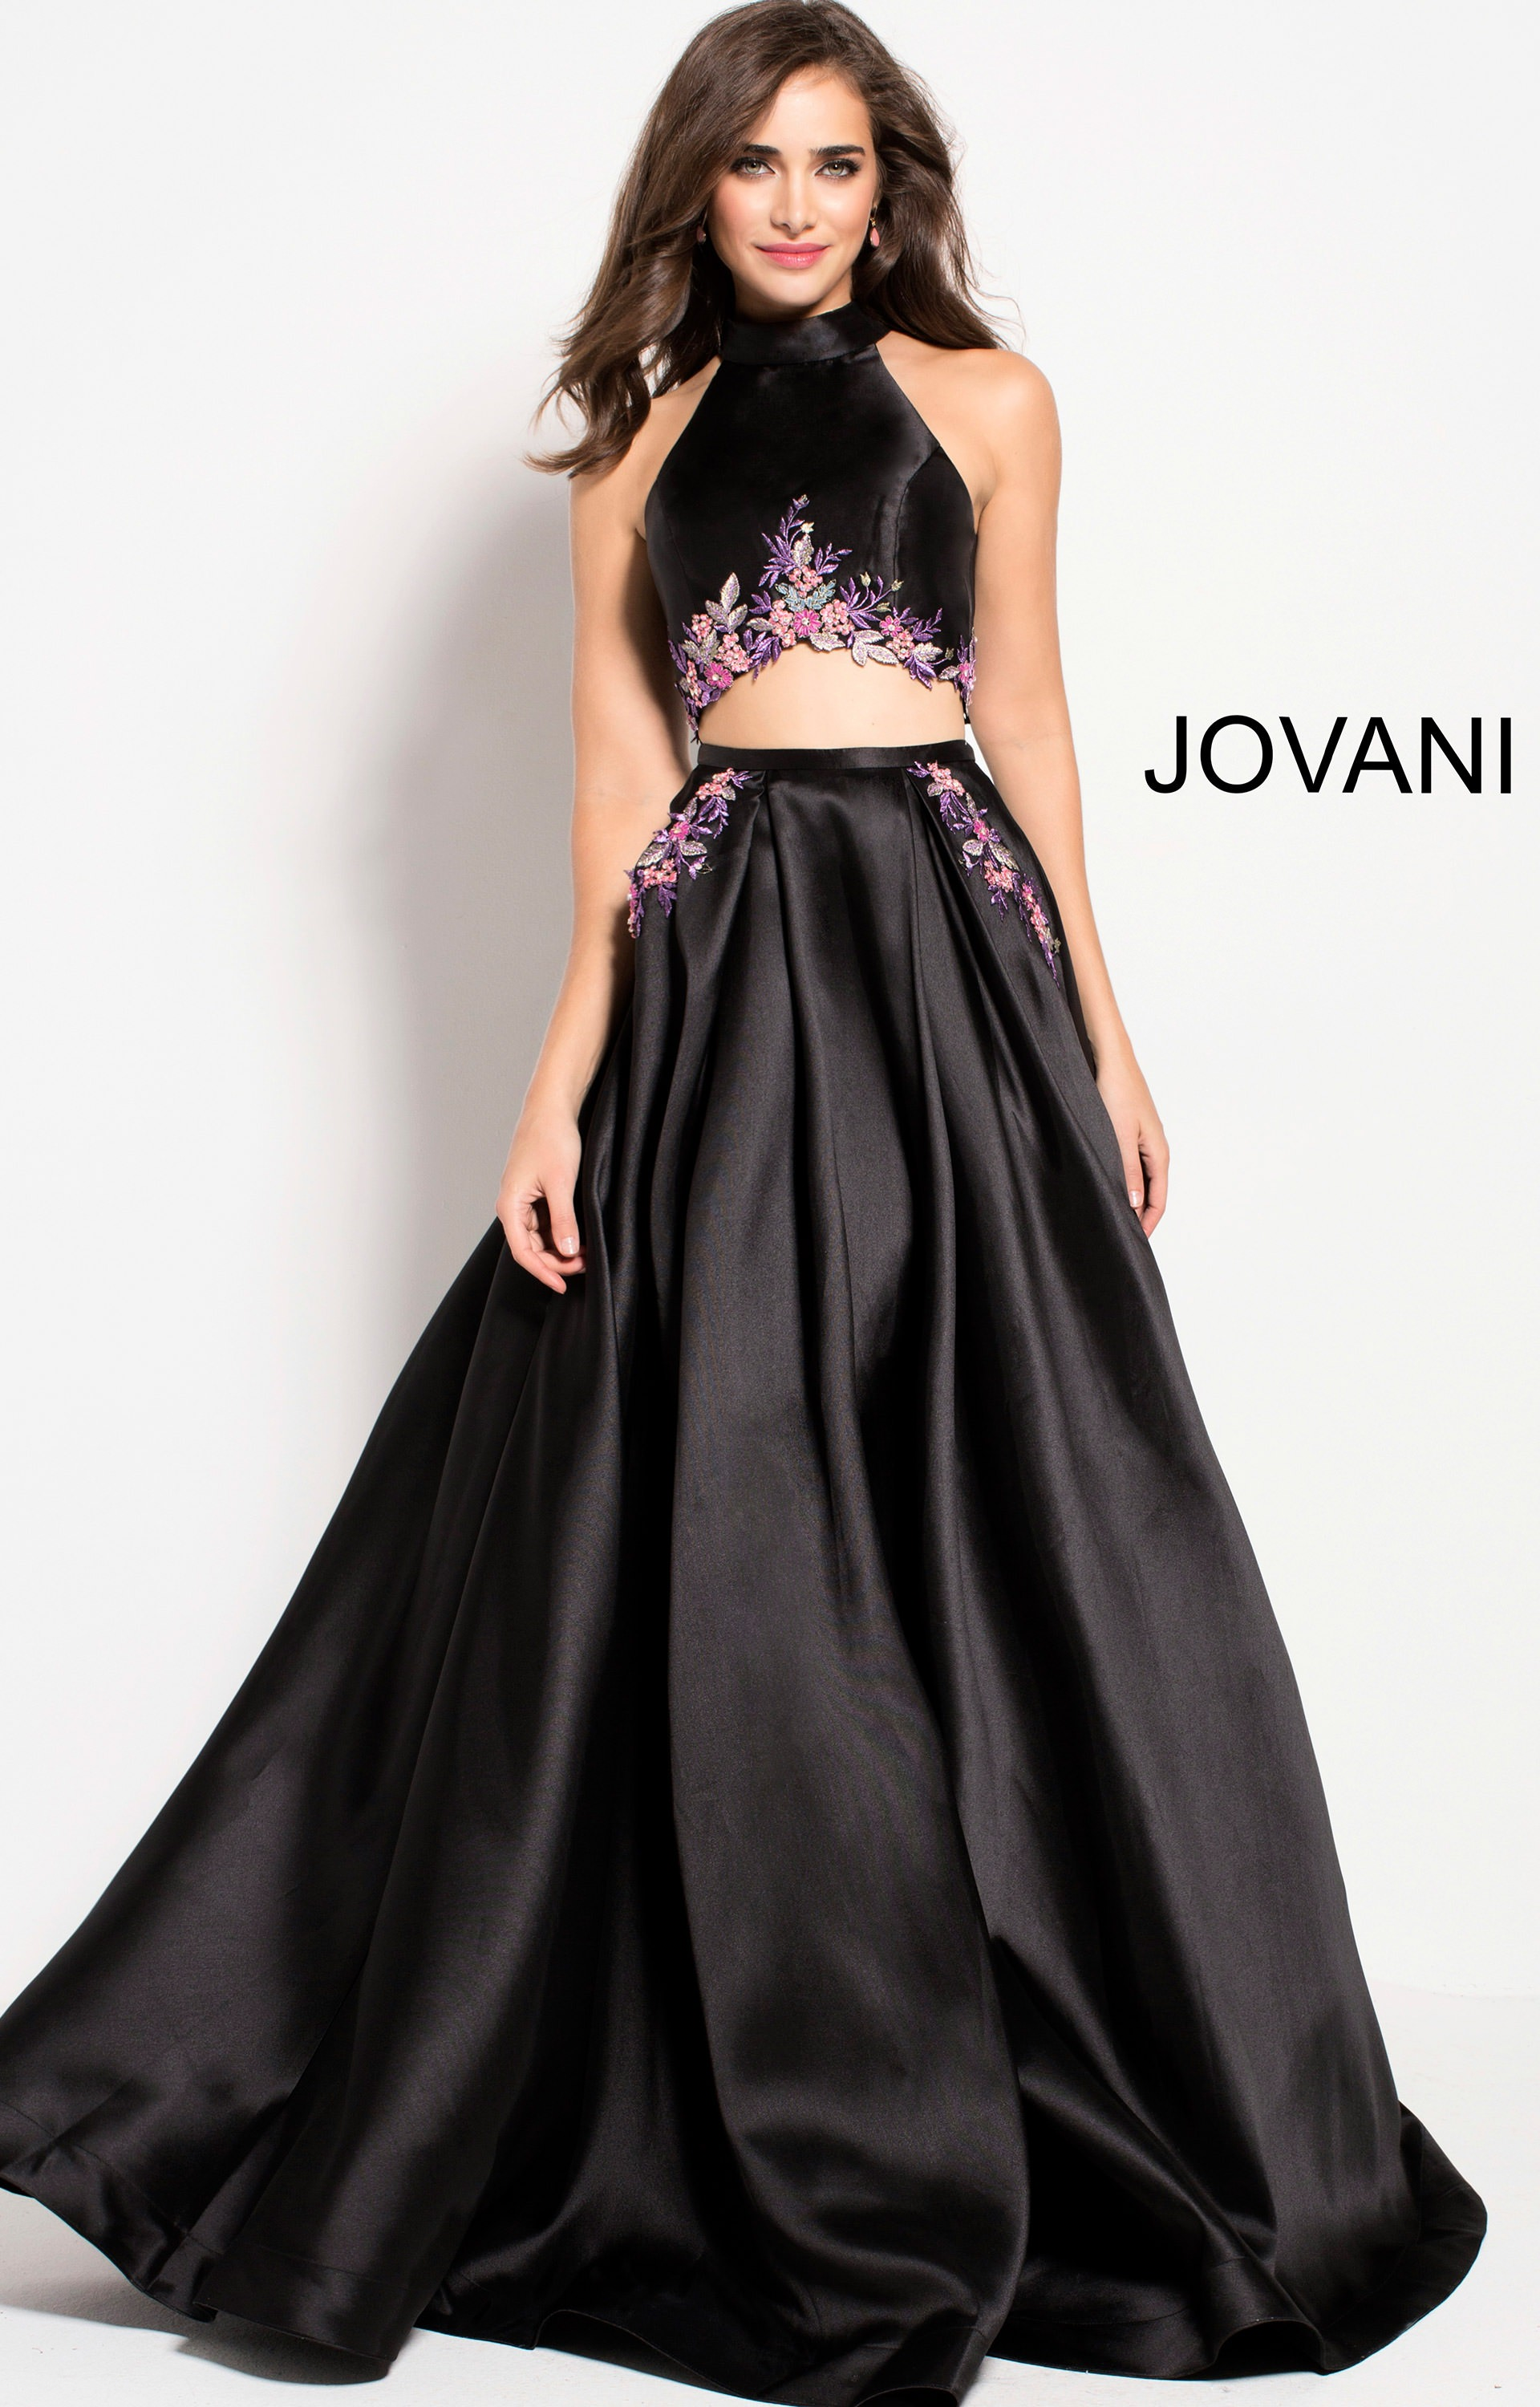 38d401a487a3 Jovani 60891 - High Neckline Satin 2 Piece Ball Gown